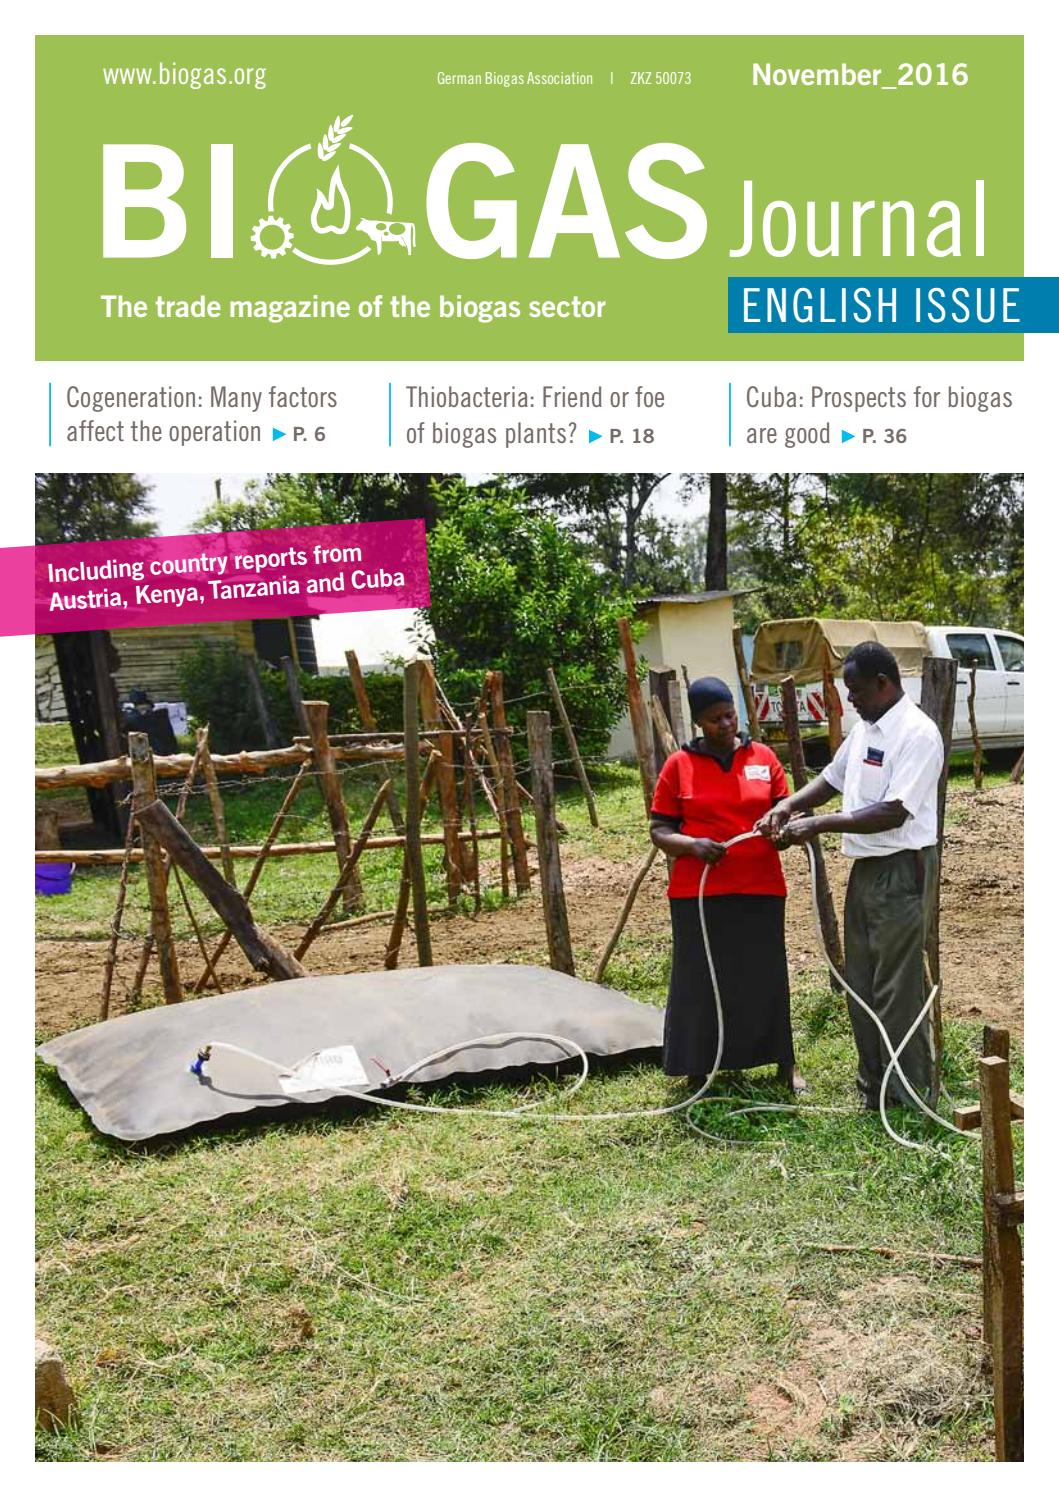 Biogas Journal English Issue November 2016 by Fachverband